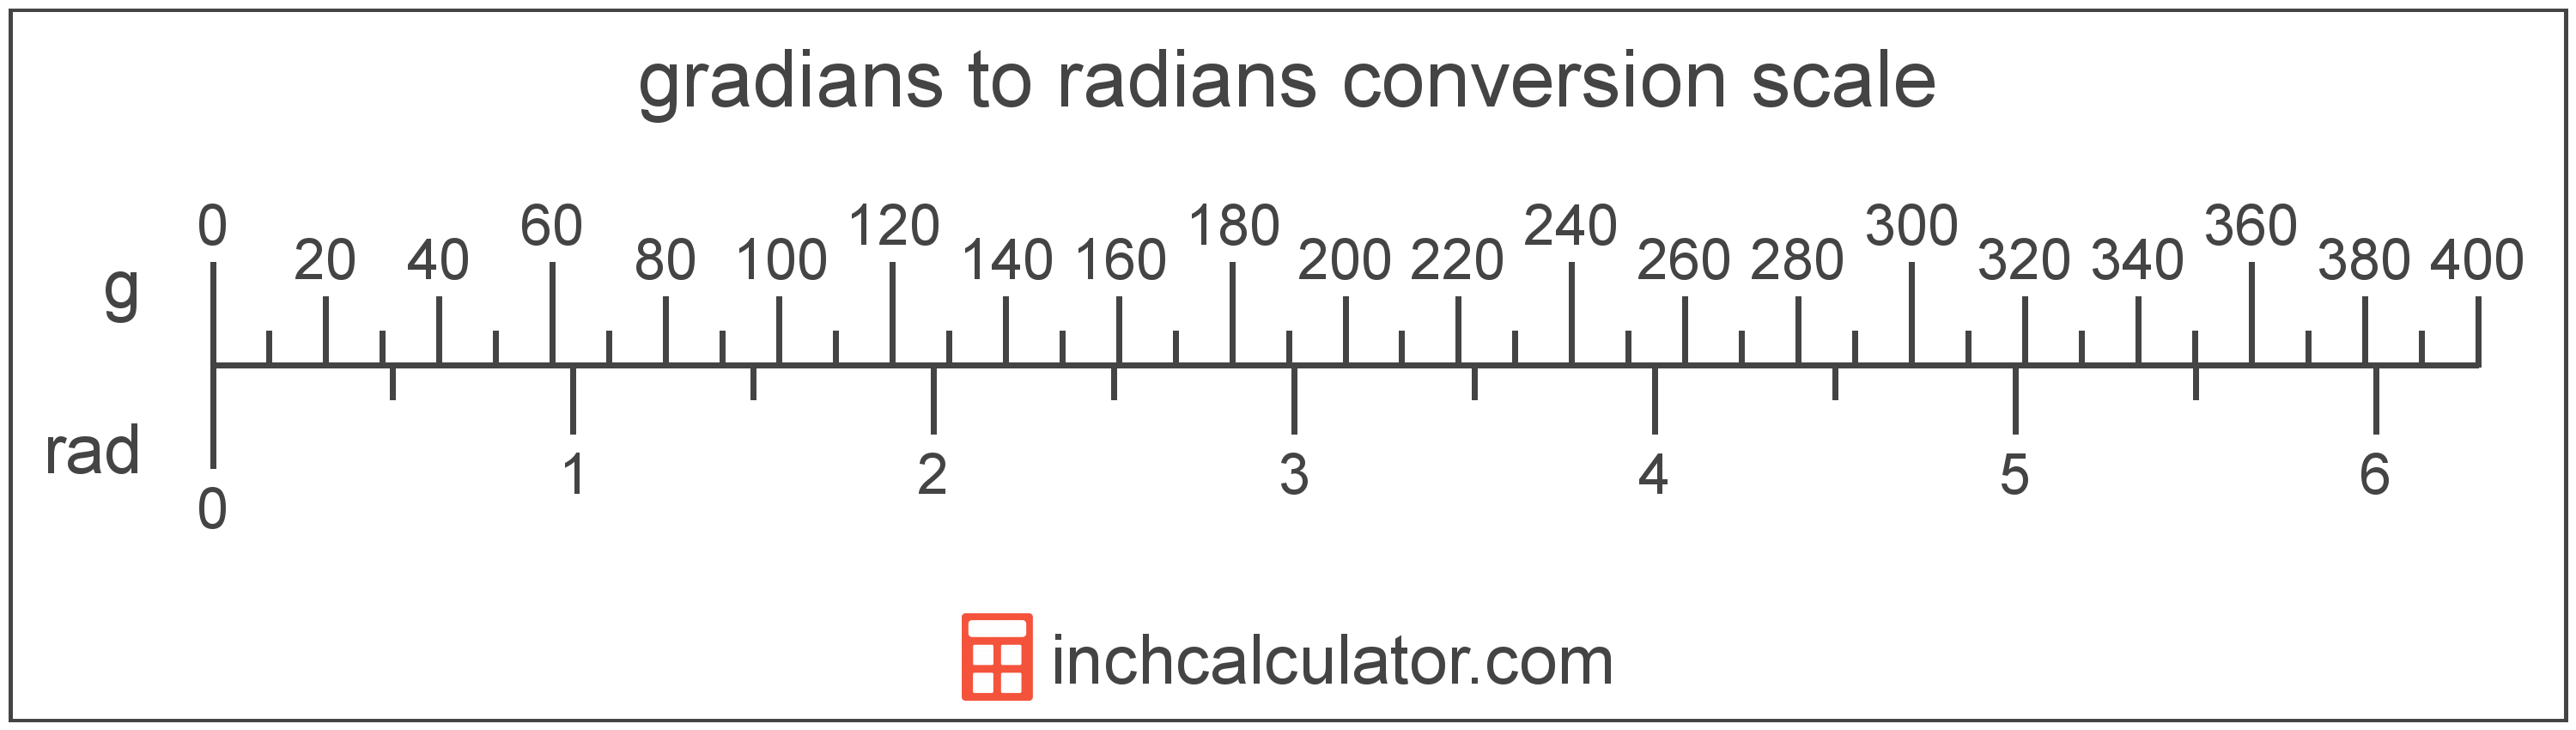 conversion scale showing radians and equivalent gradians angle values